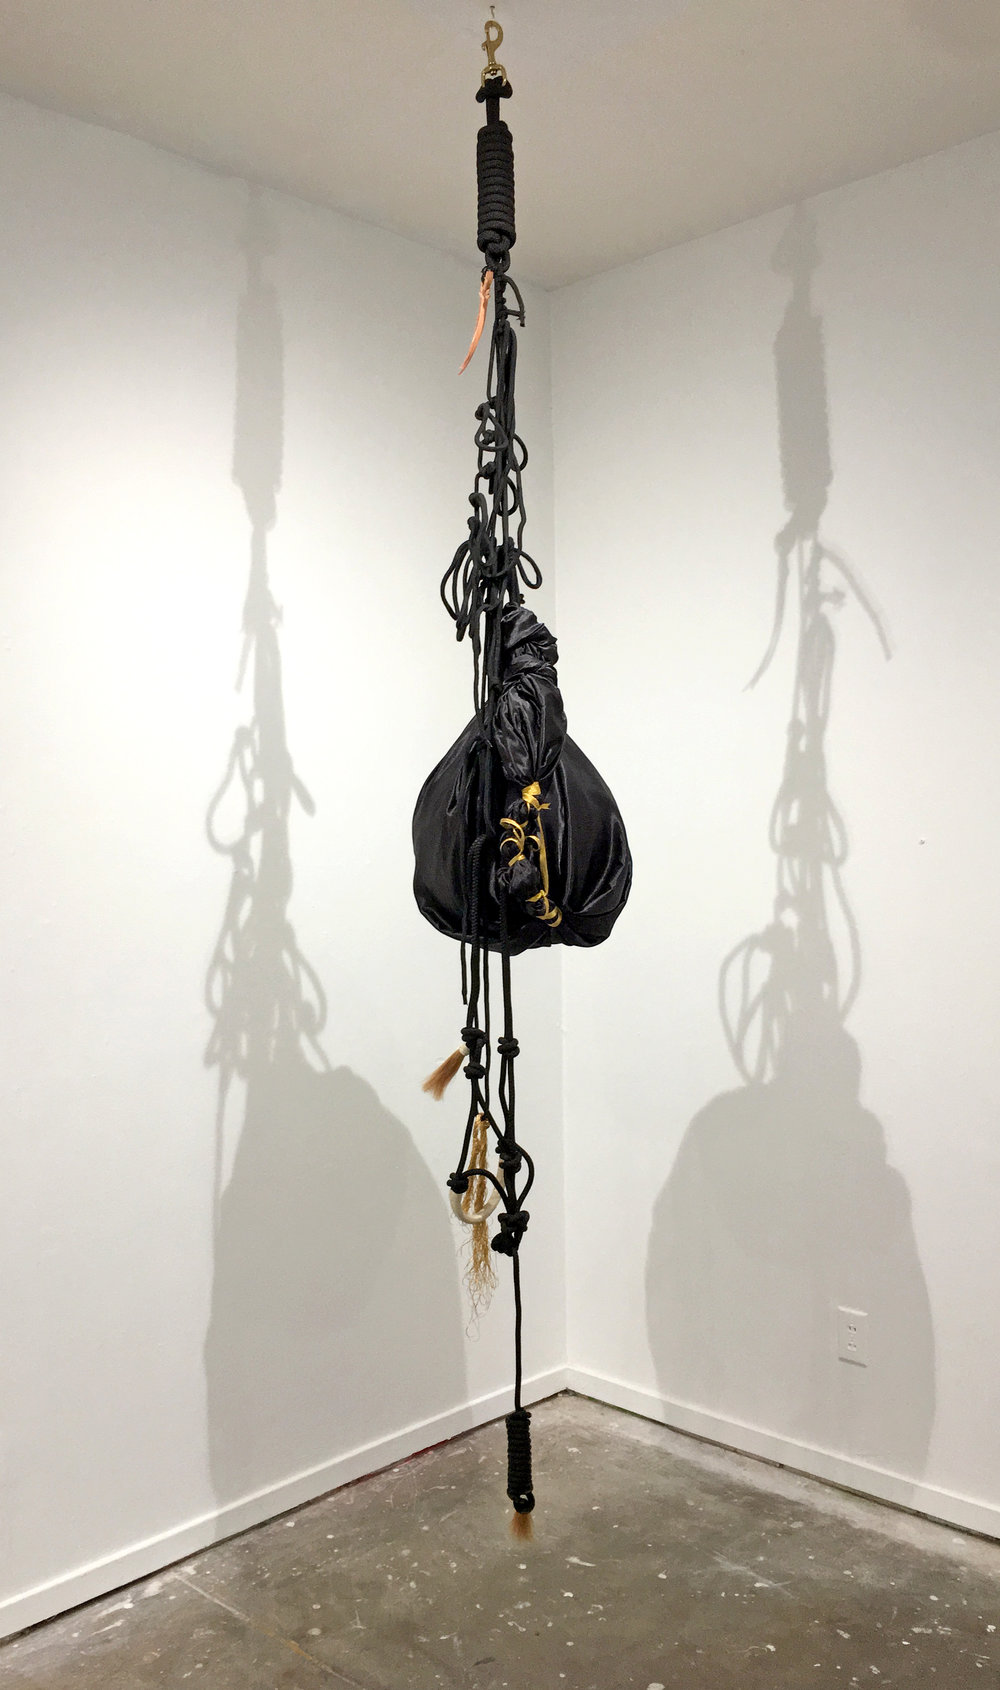 Blue Black, Benighted,   2018, Satin, horse harness, ribbon, rope, beach ball, Dimensions variable